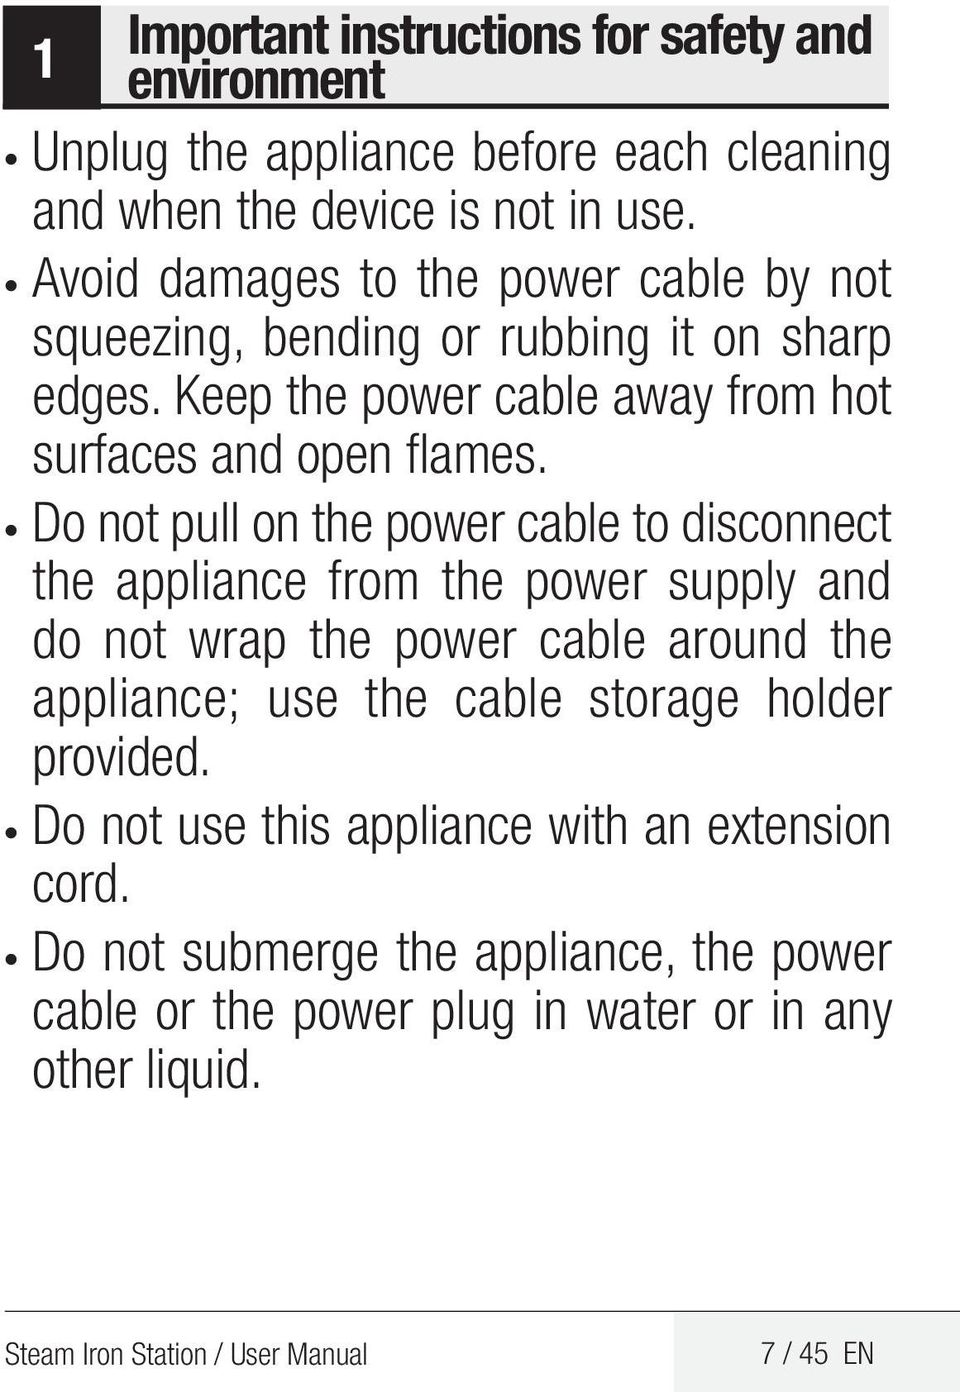 Do not pull on the power cable to disconnect the appliance from the power supply and do not wrap the power cable around the appliance; use the cable storage